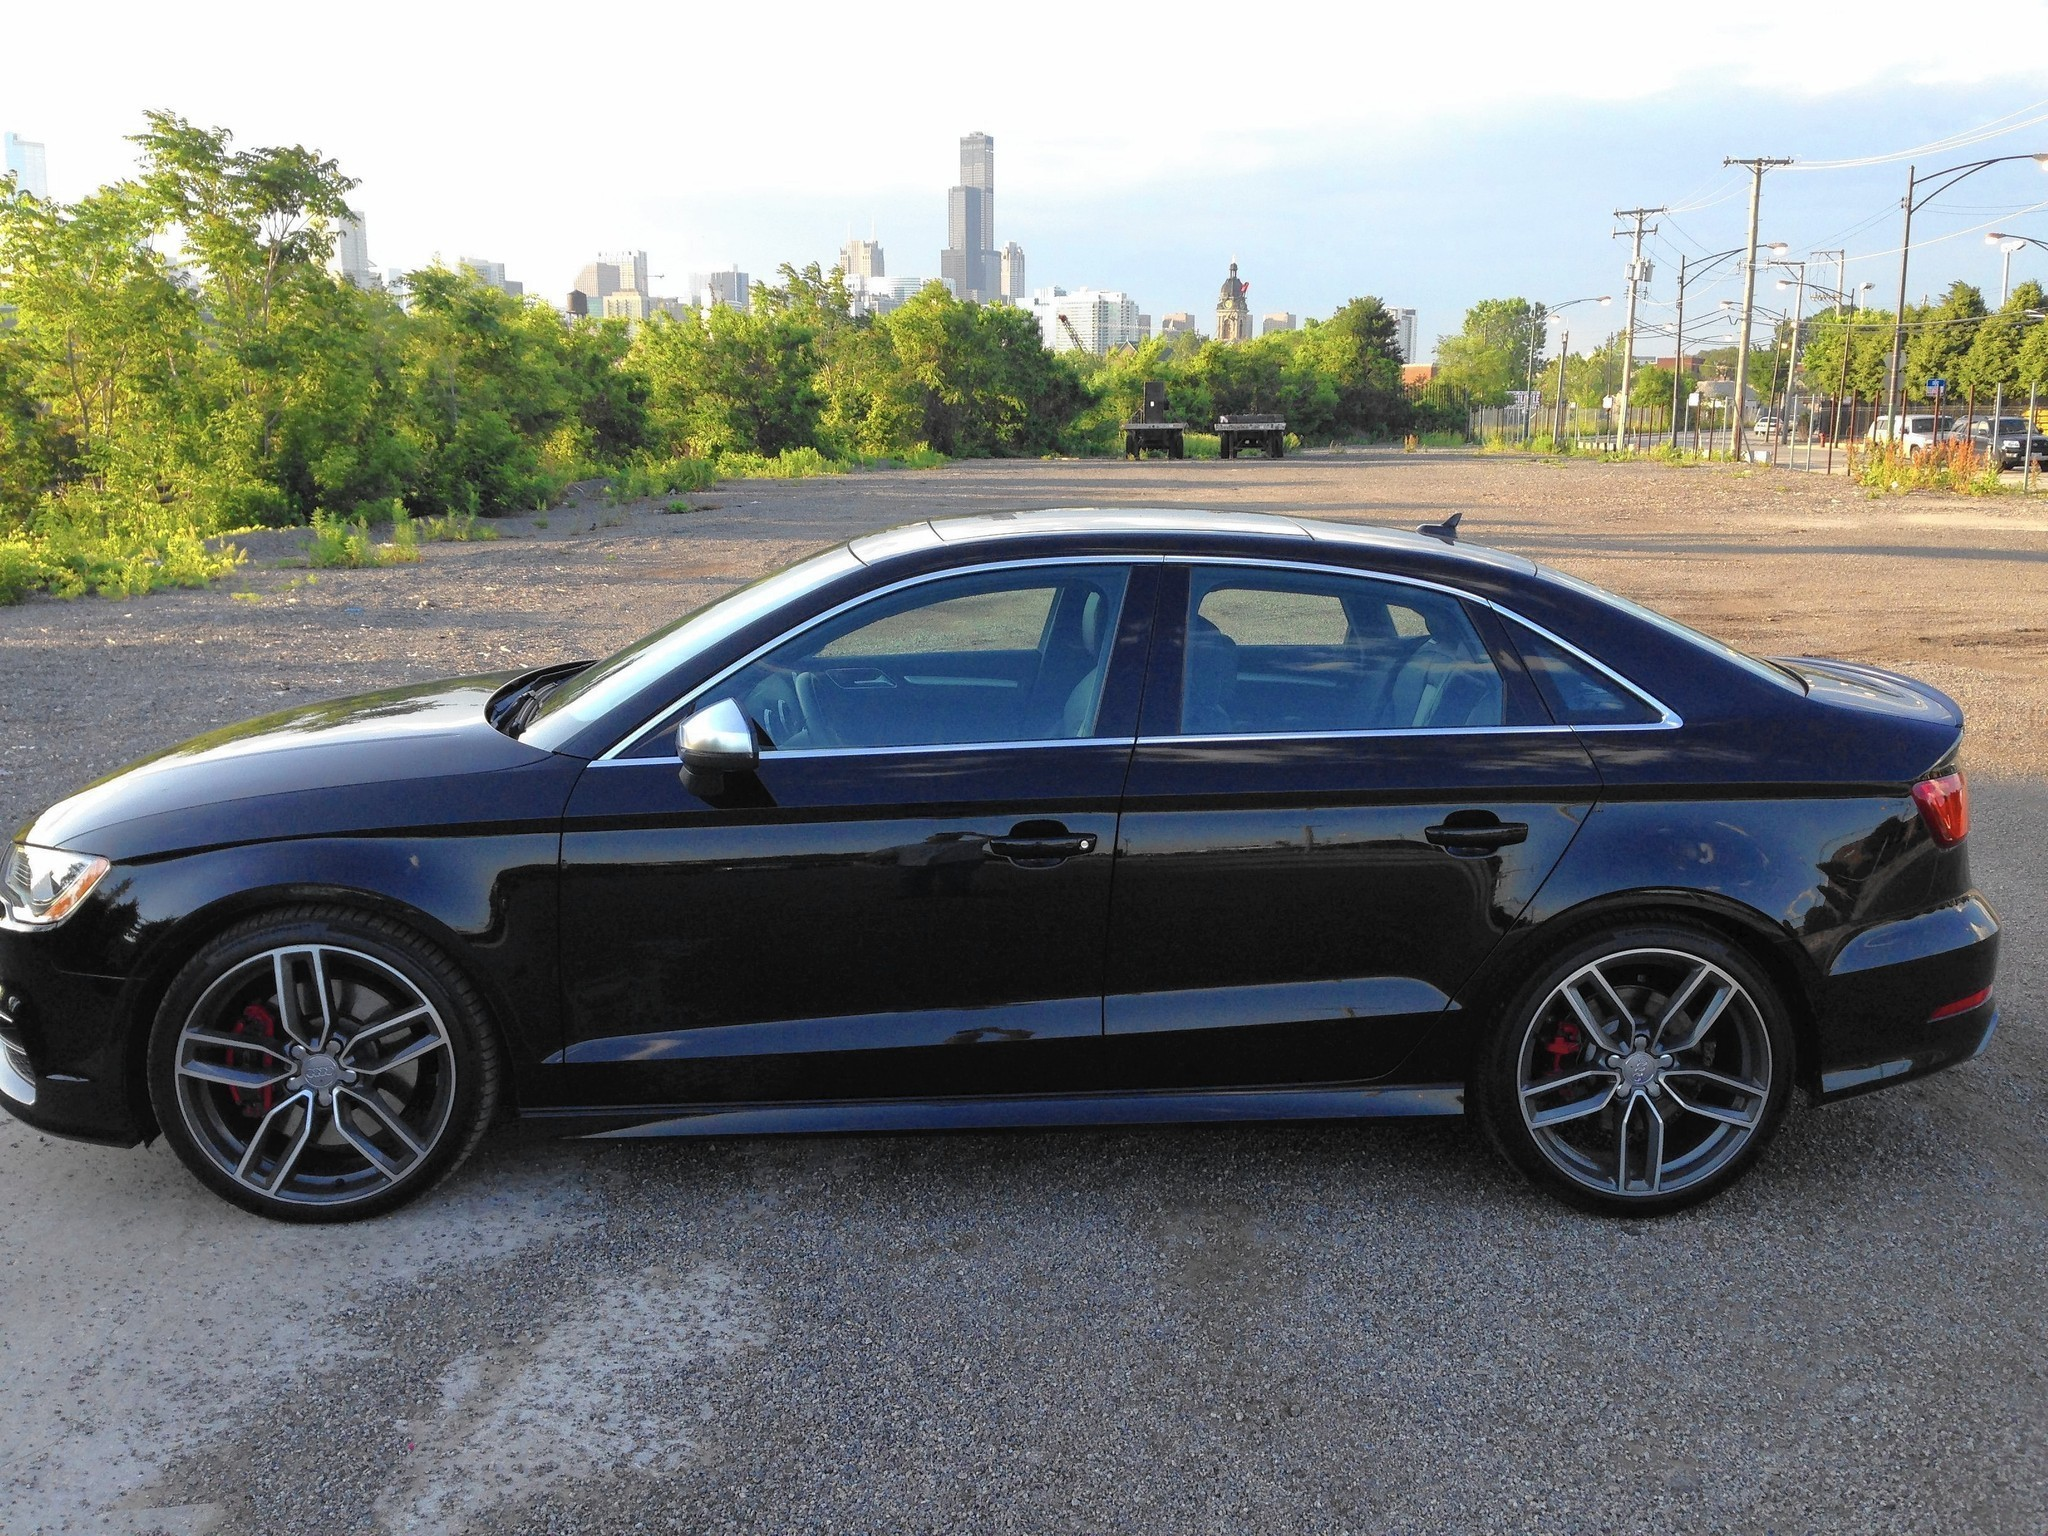 Auto review: 2015 Audi S3 compromises nothing for sporty ... on audi b5, audi r10, audi wagon models, audi f3, audi 2 door sports car, audi m5, audi sedan, audi race car, audi 2015 models, audi r5, audi e-tron, audi hatchback models, audi a7, audi a8, audi x3, audi modifications, audi b9, audi b4, audi tts, audi sr5,